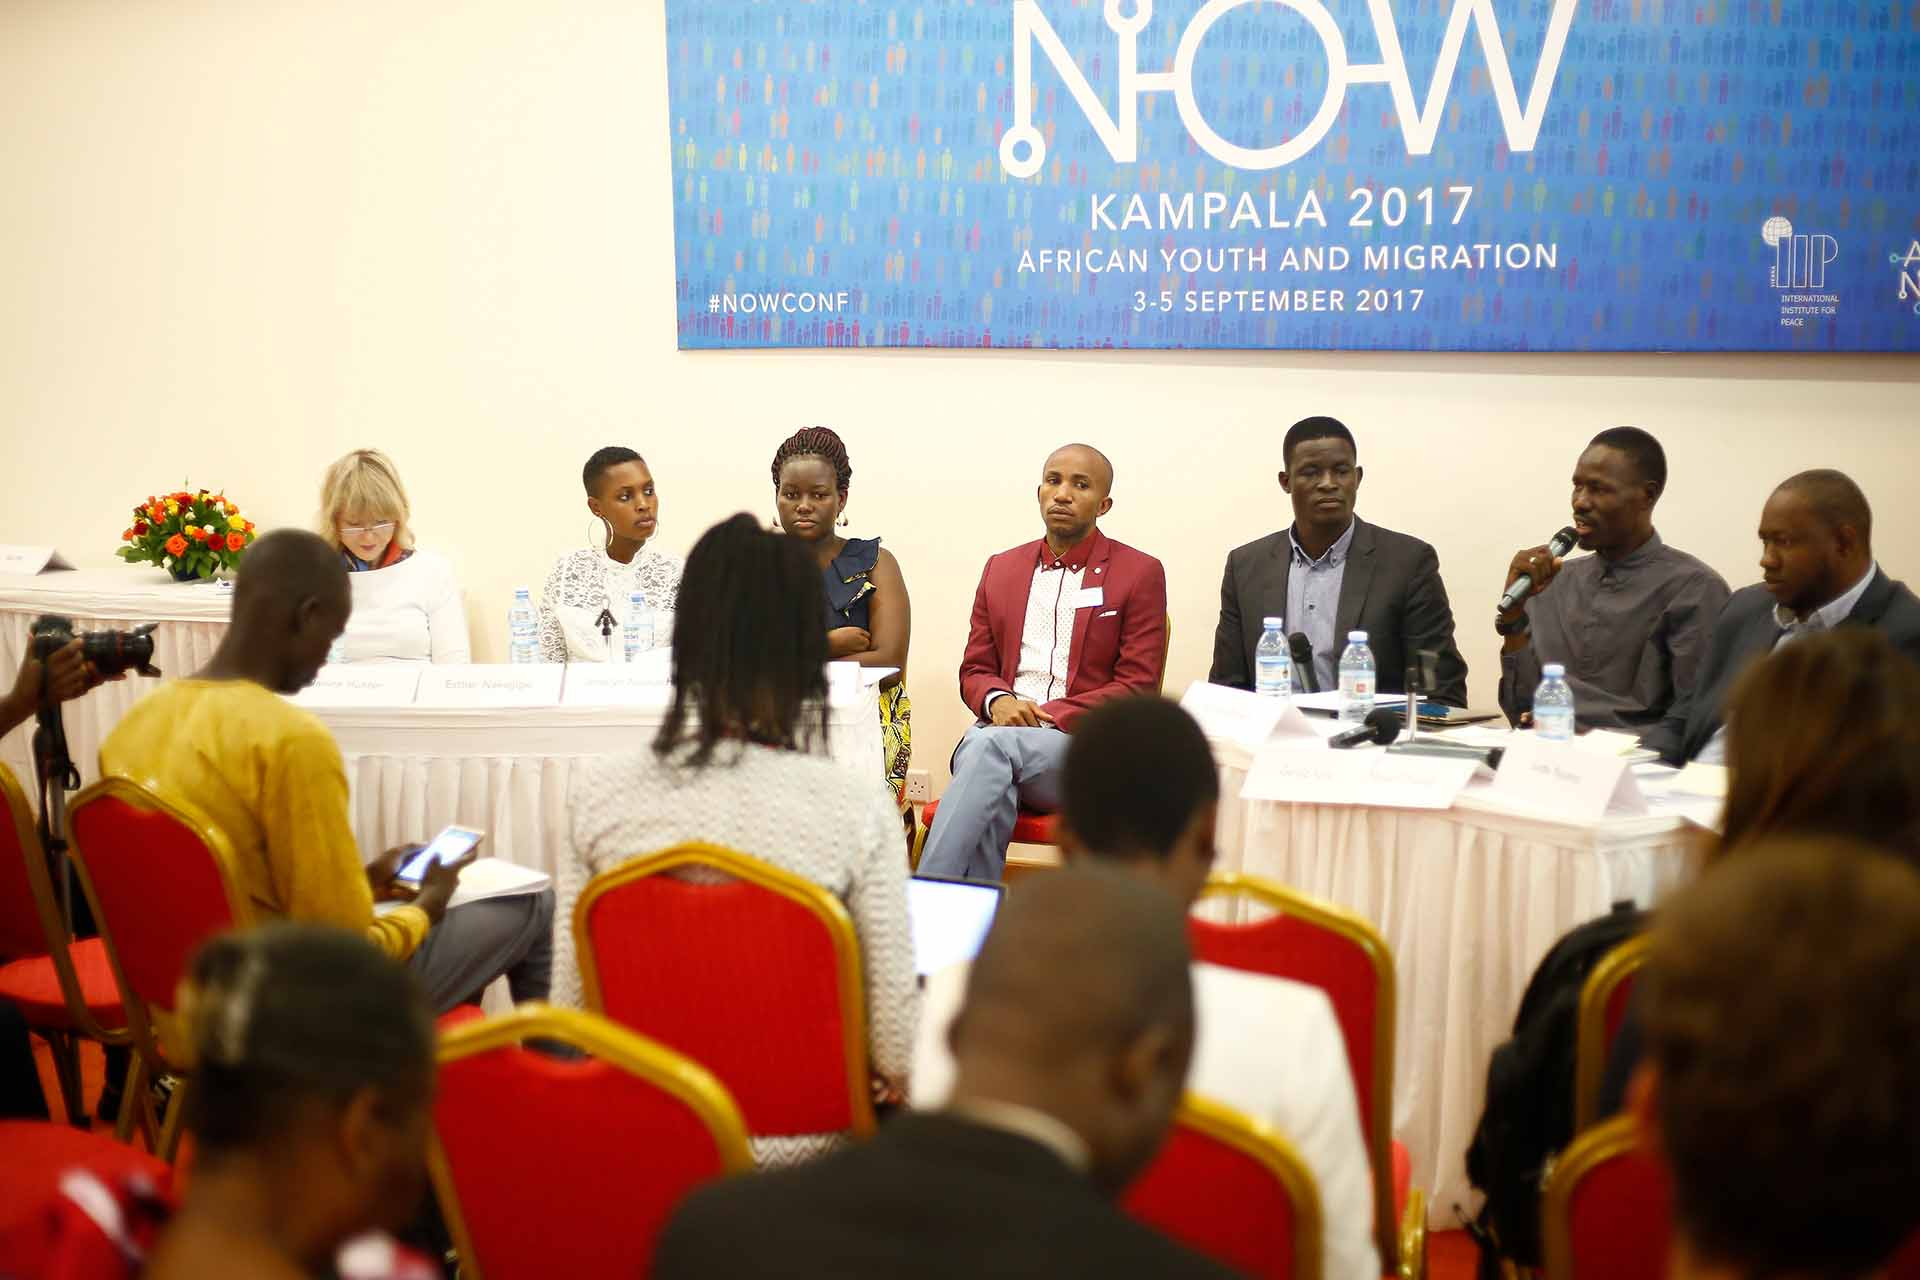 NOW Conference Kampala 2017